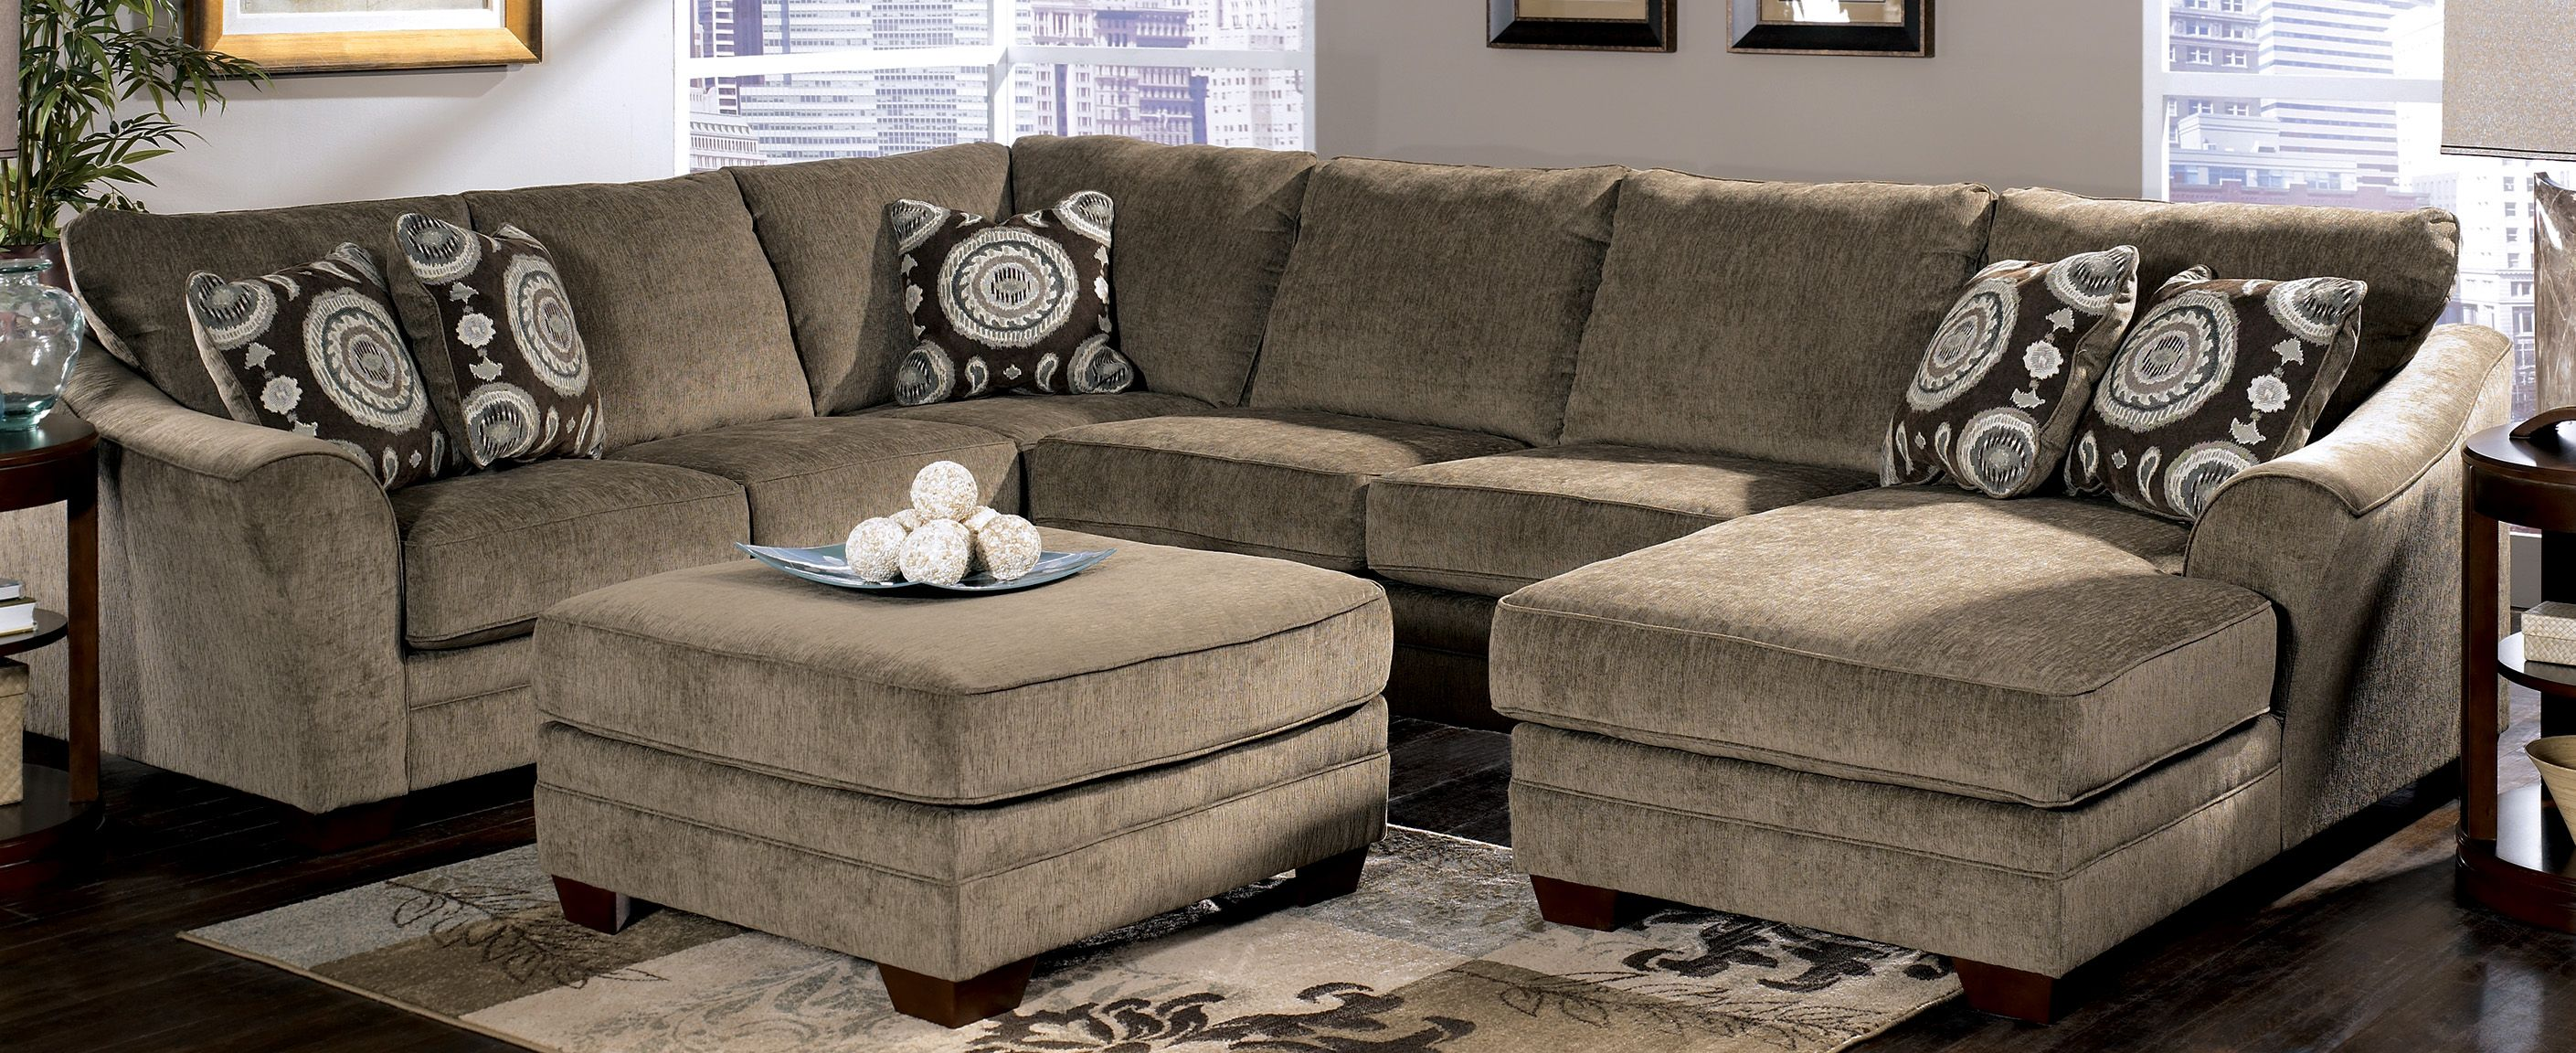 discount sectional sofa living room furniture cincinnati ohio area signature design by ashley. Black Bedroom Furniture Sets. Home Design Ideas